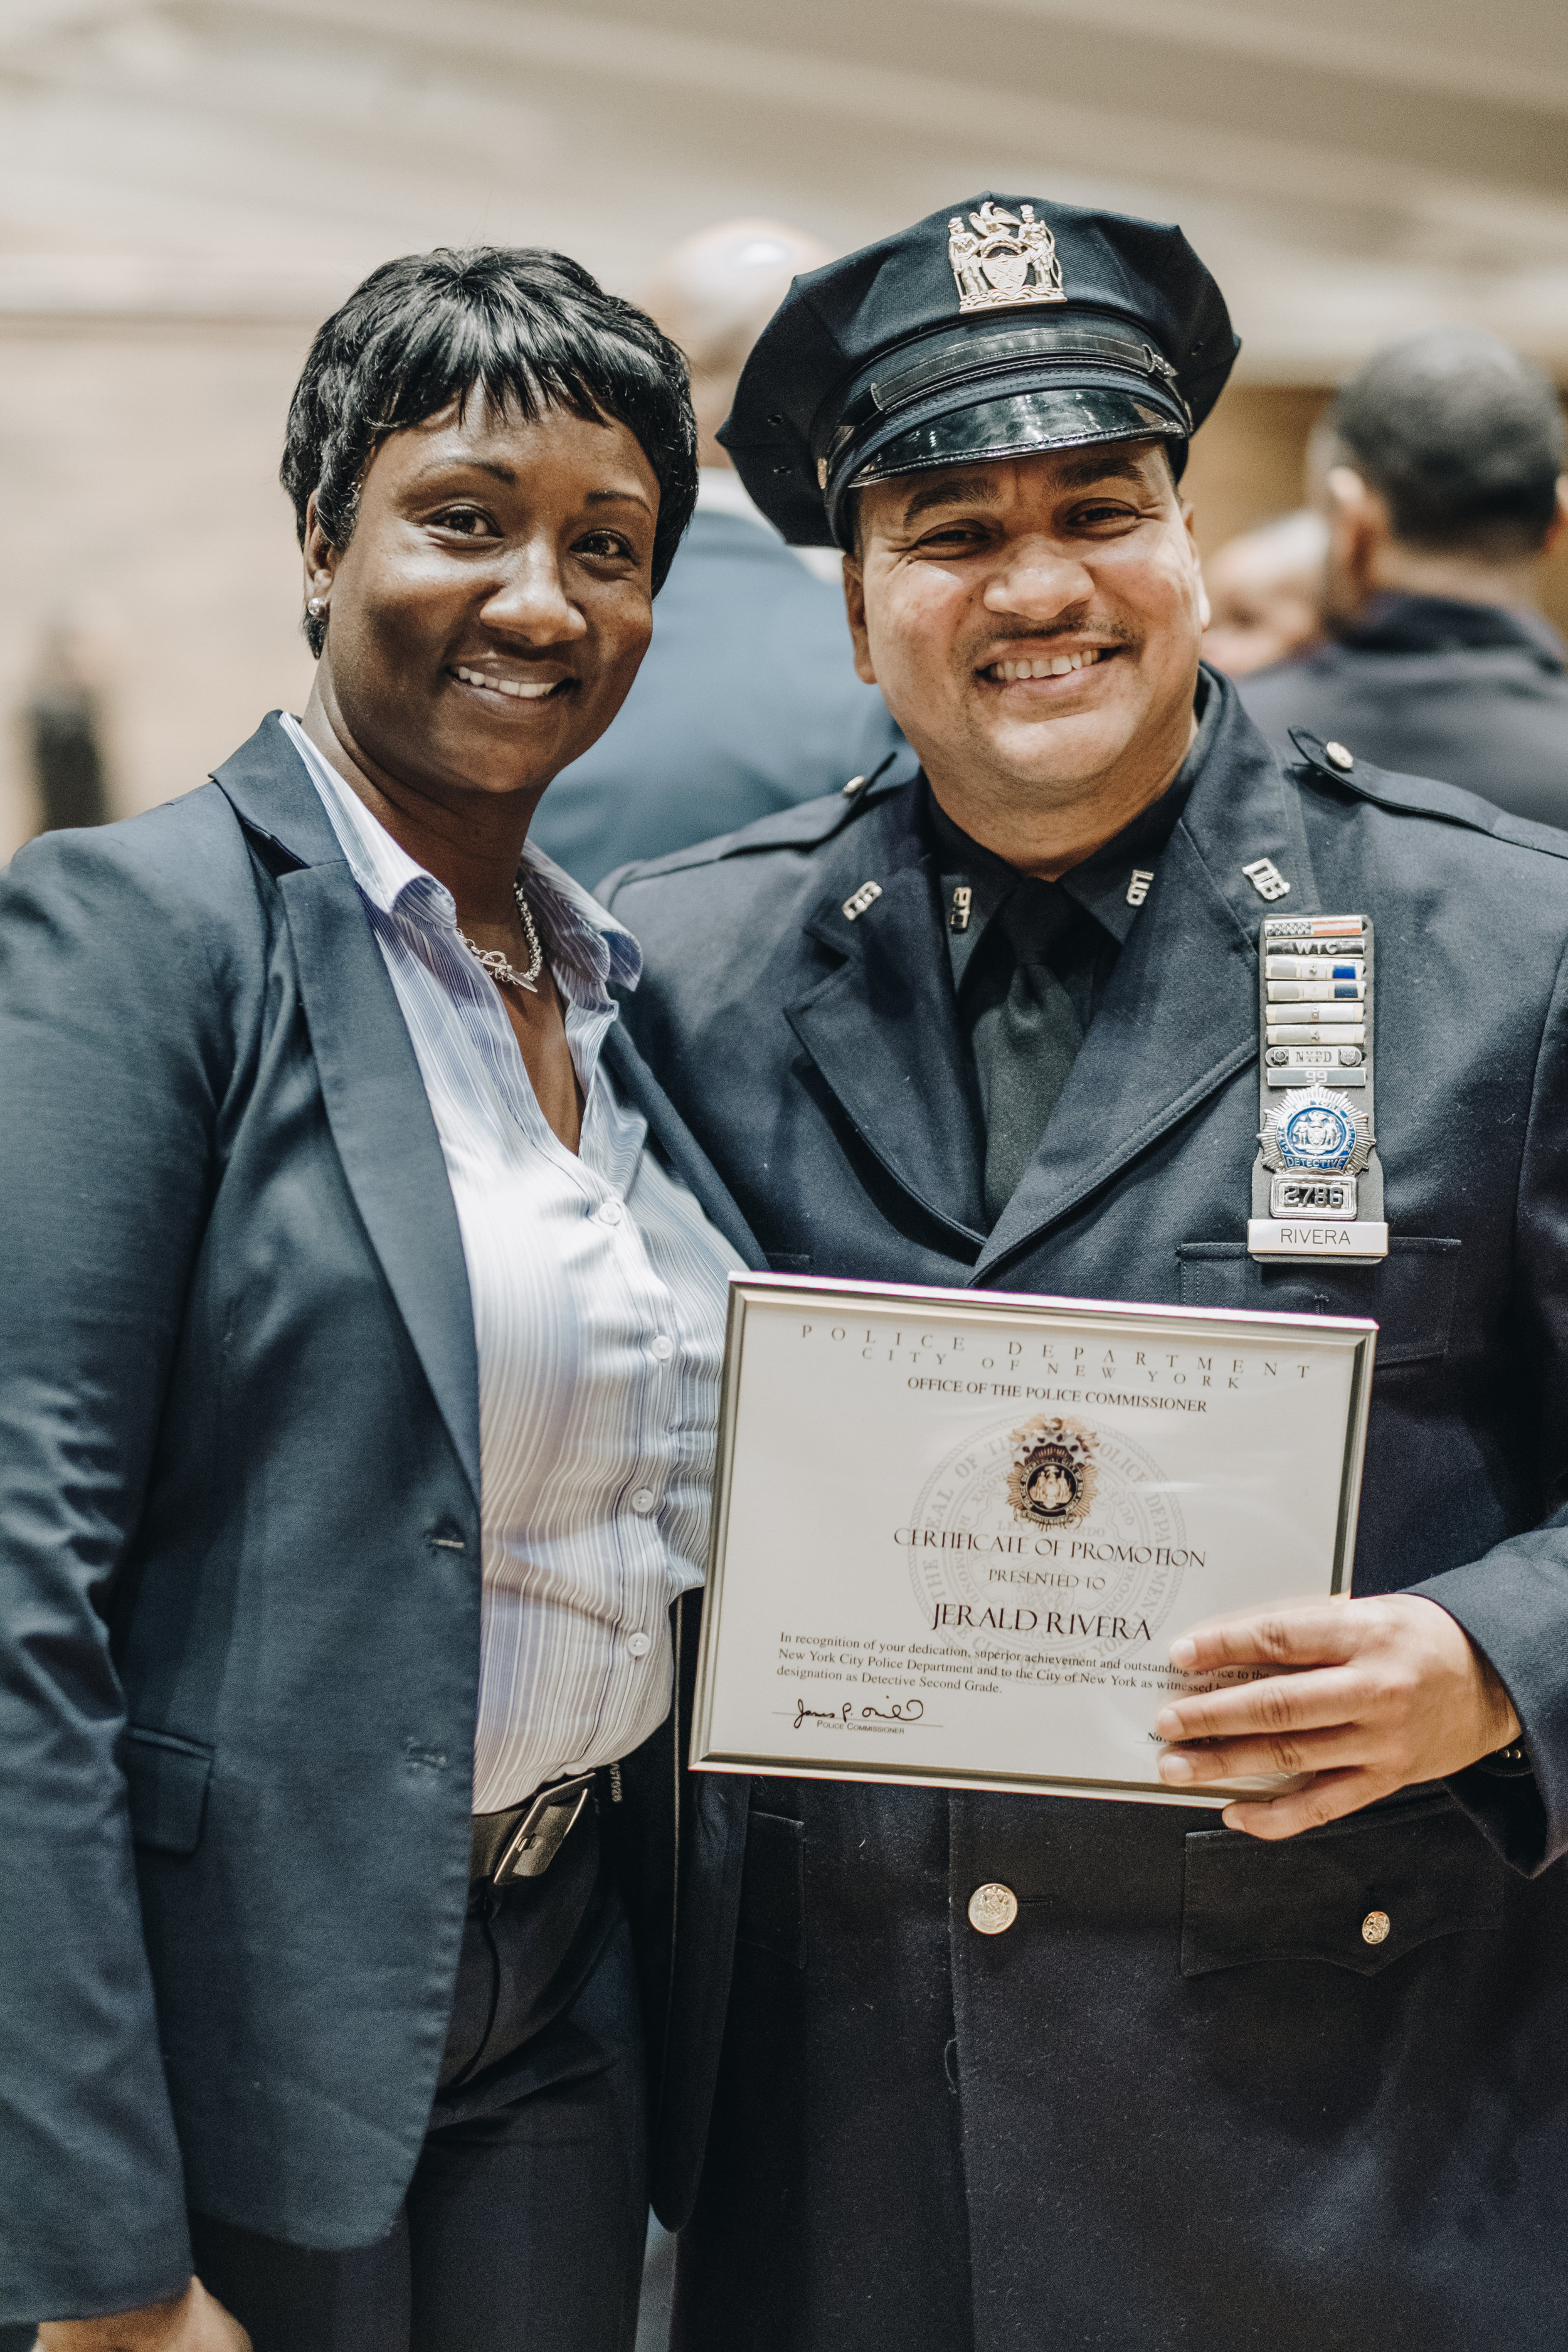 NYPD_Promotions-58.jpg